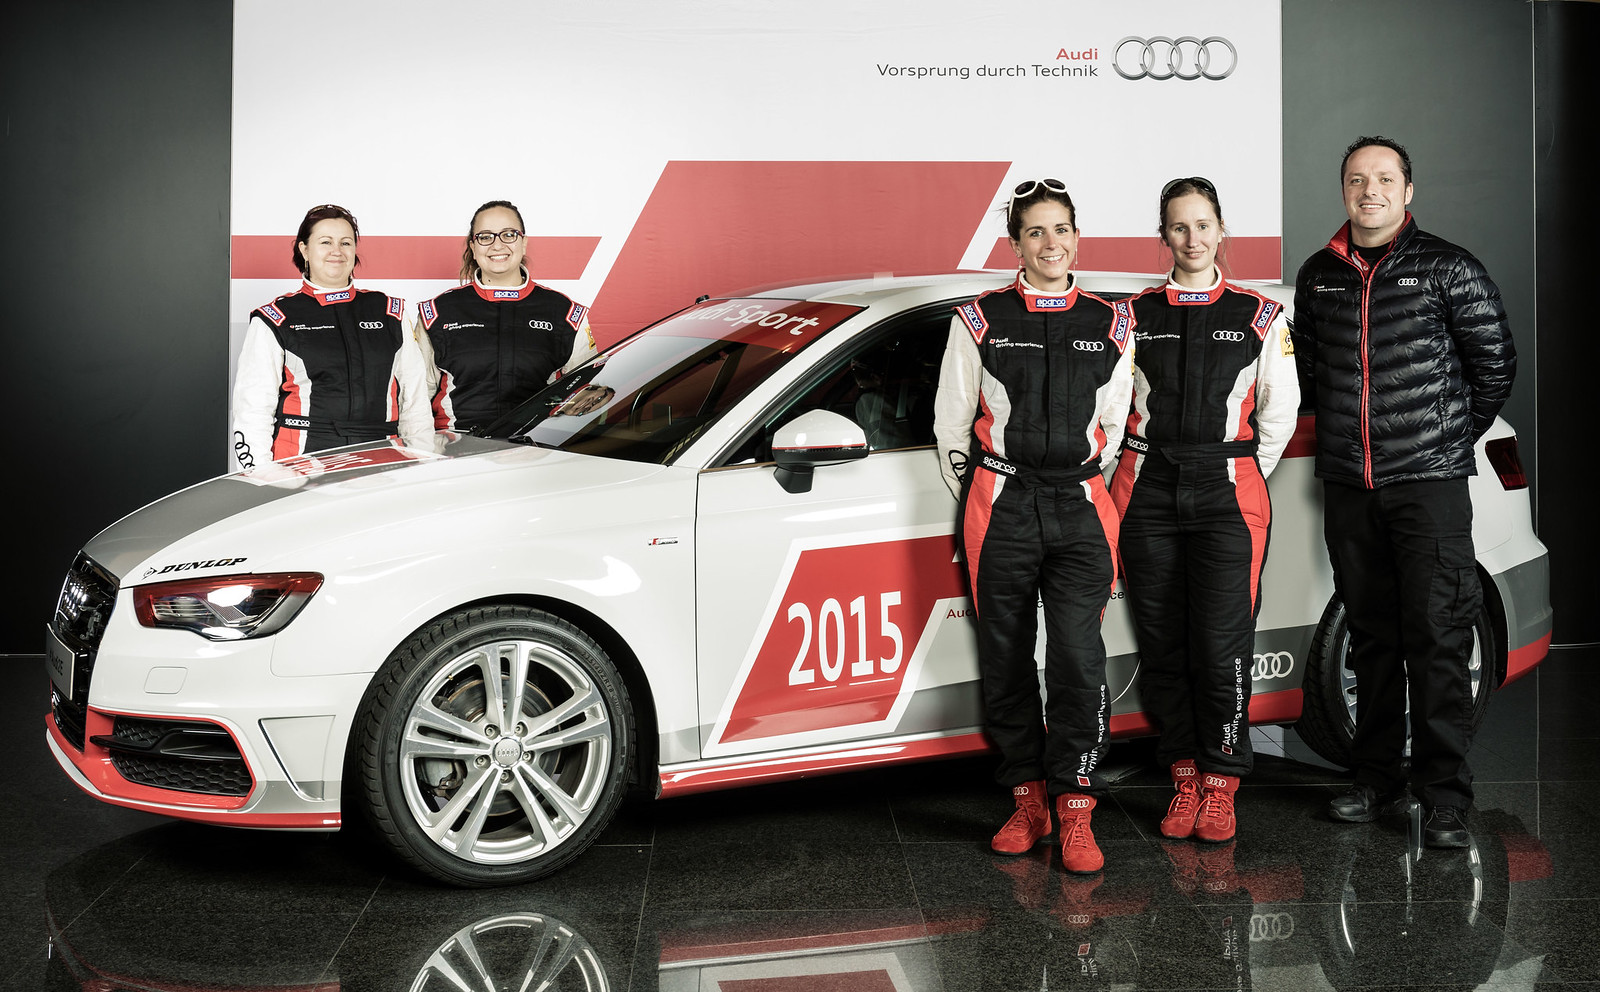 audi experience endurance team280 quipage 100 girls. Black Bedroom Furniture Sets. Home Design Ideas